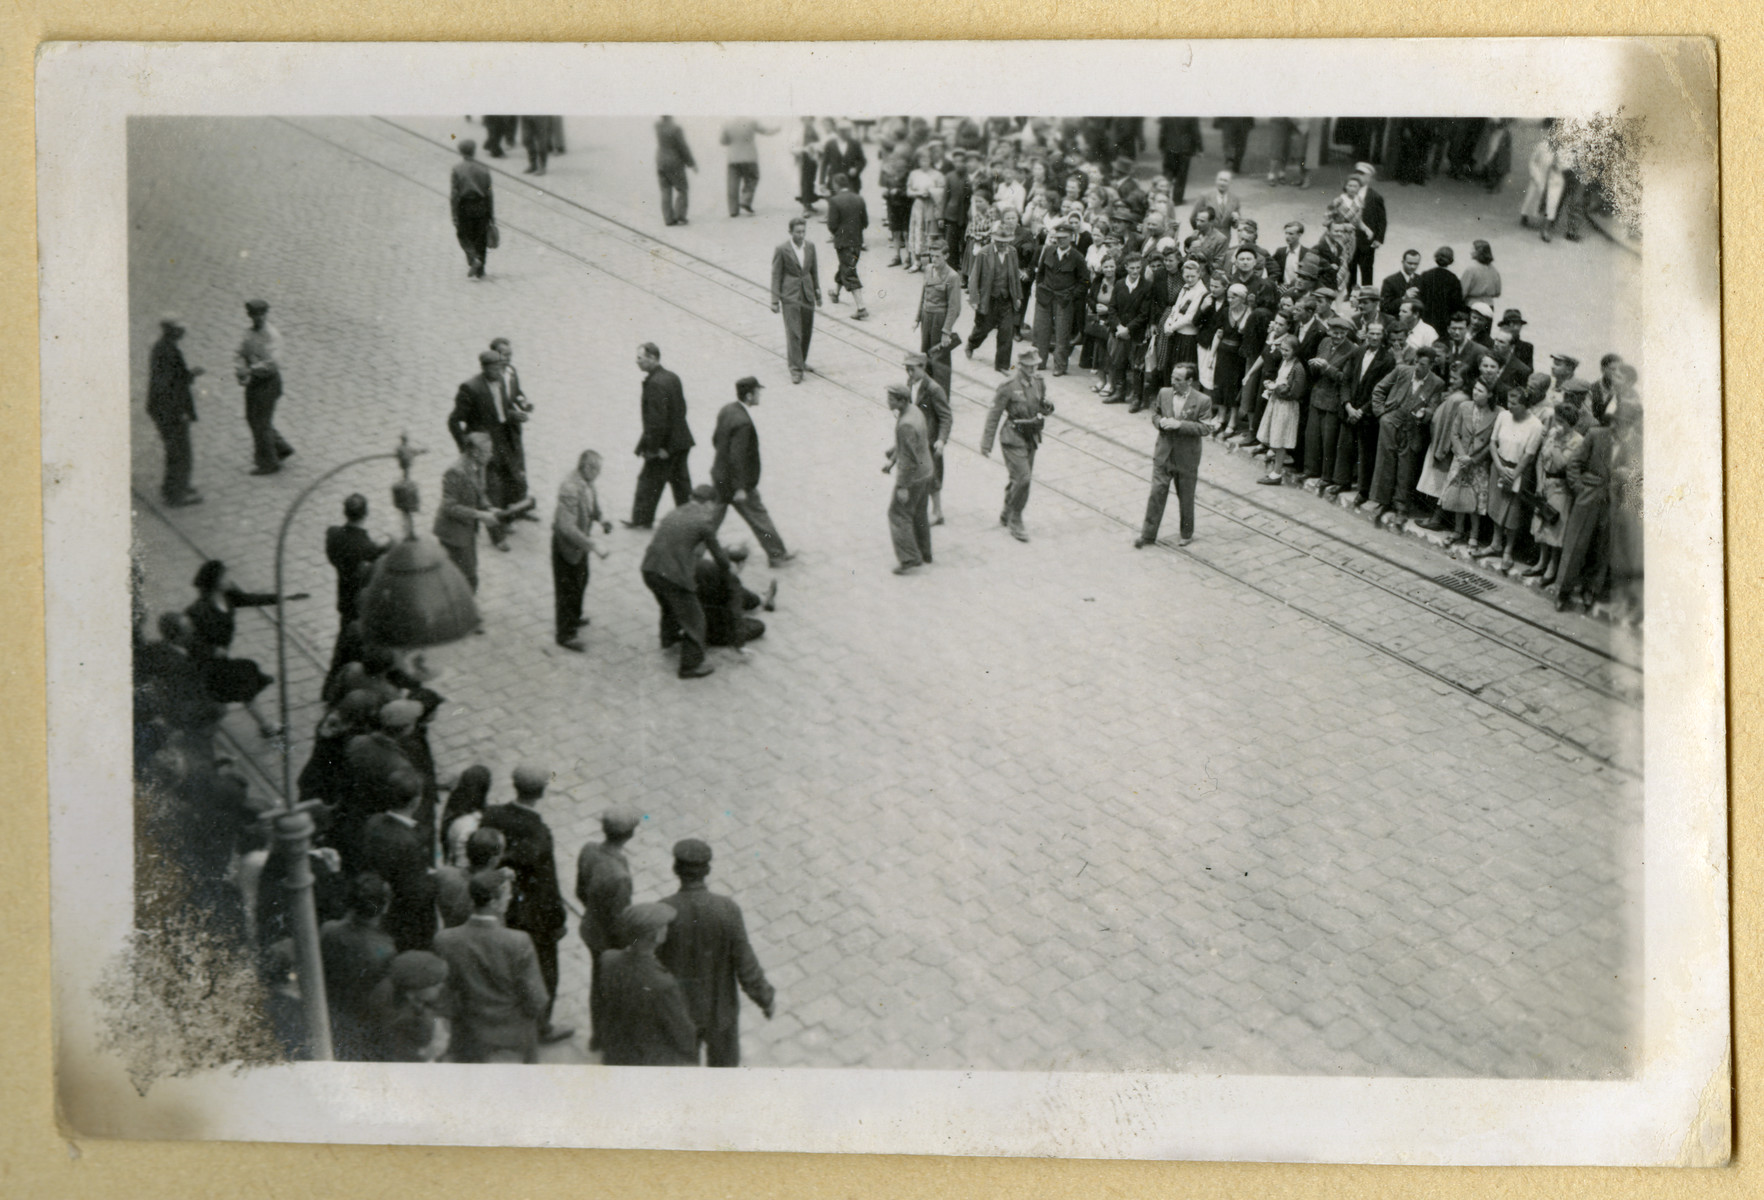 Bystanders watch Jews as they are rounded up and attacked on a street in Lvov.